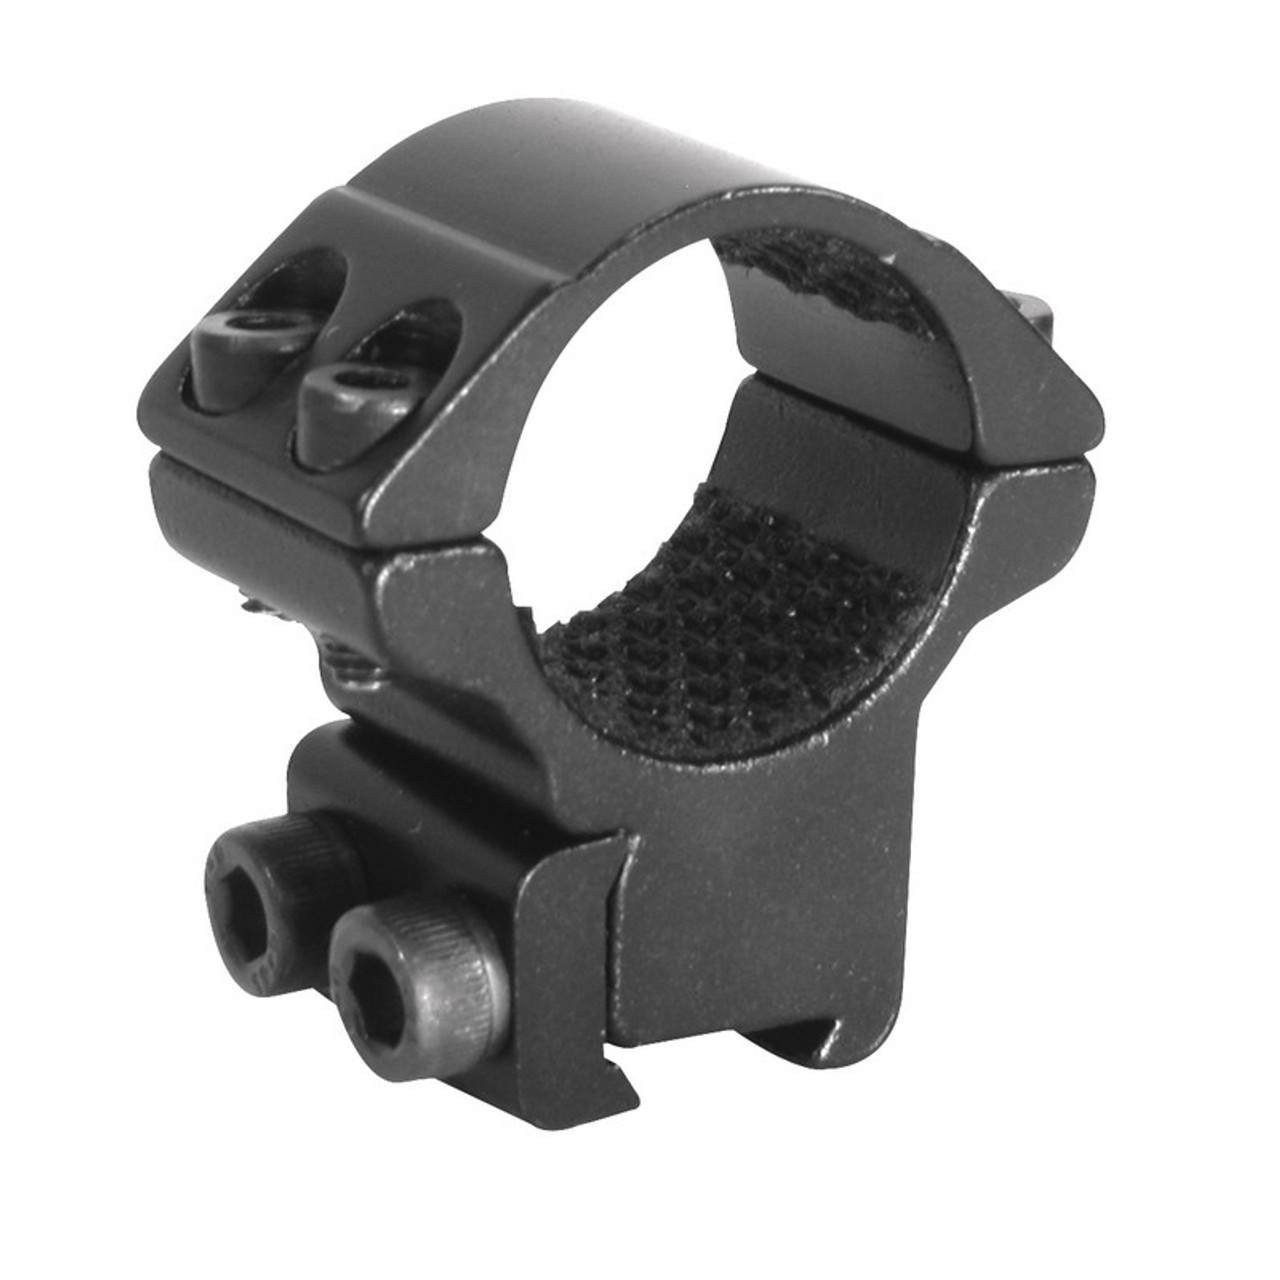 "Best price for Hawke Match Mount 1"" 9-11mm, on sale from Bradford Stalker"